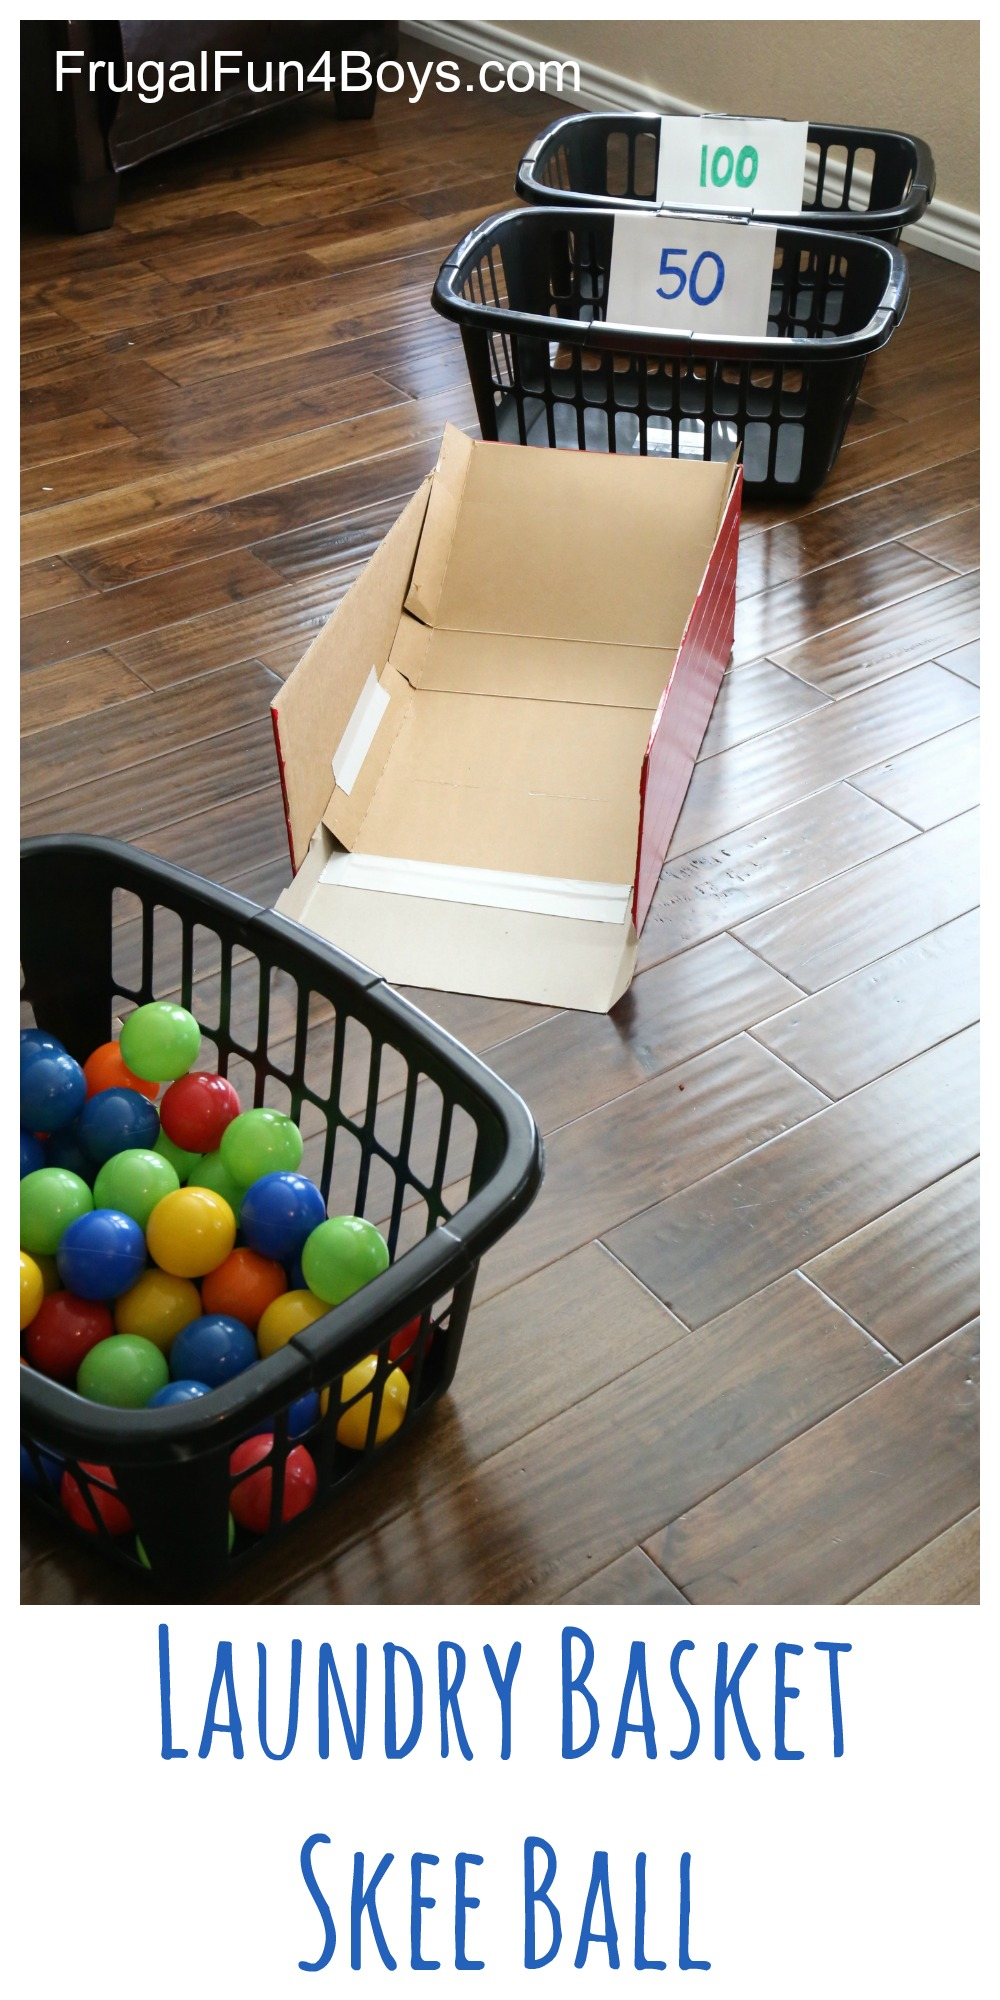 Laundry Basket Skee Ball With Ball Pit Balls Frugal Fun For Boys And Girls